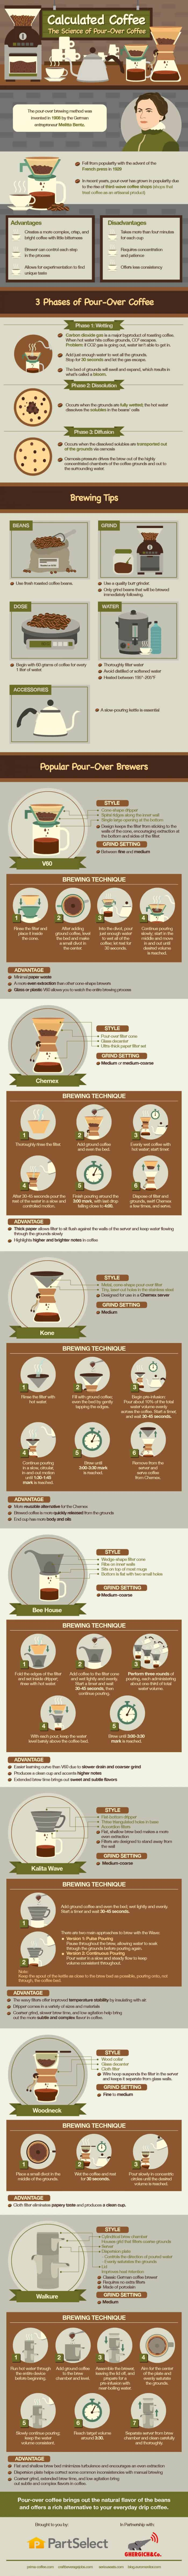 Learn more about the science behind pour-over coffee